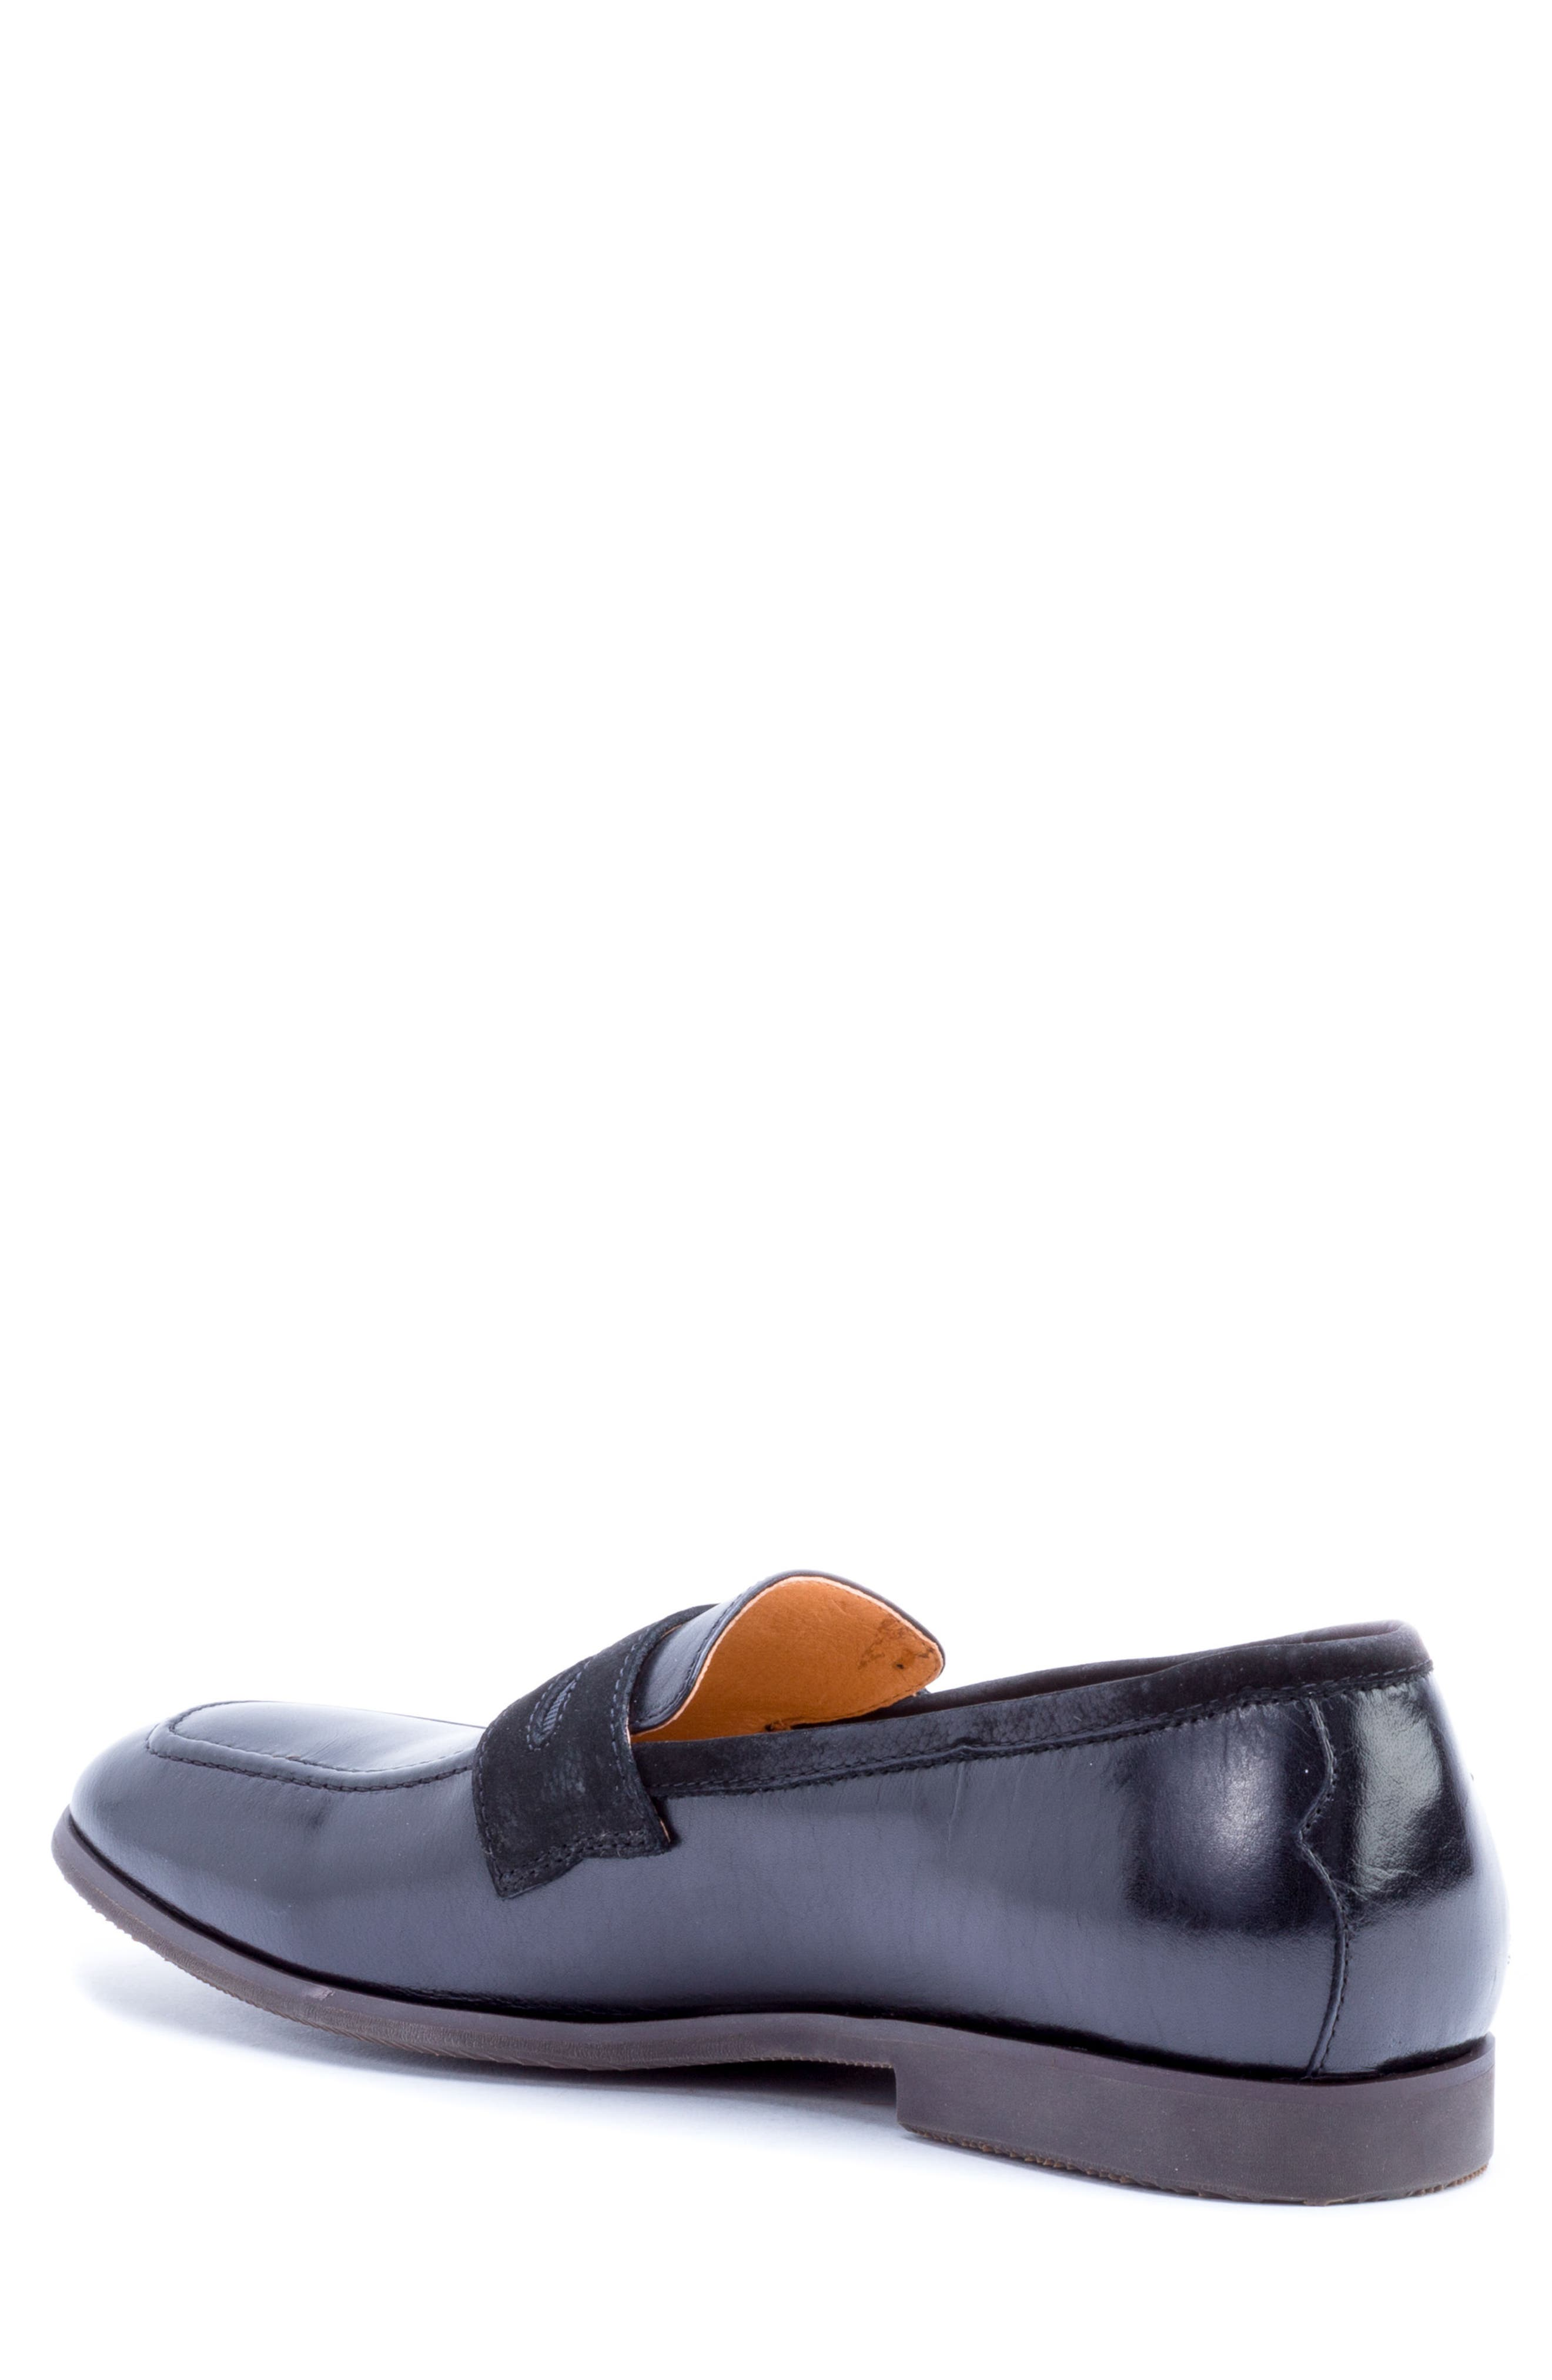 Apron Toe Penny Loafer,                             Alternate thumbnail 2, color,                             001